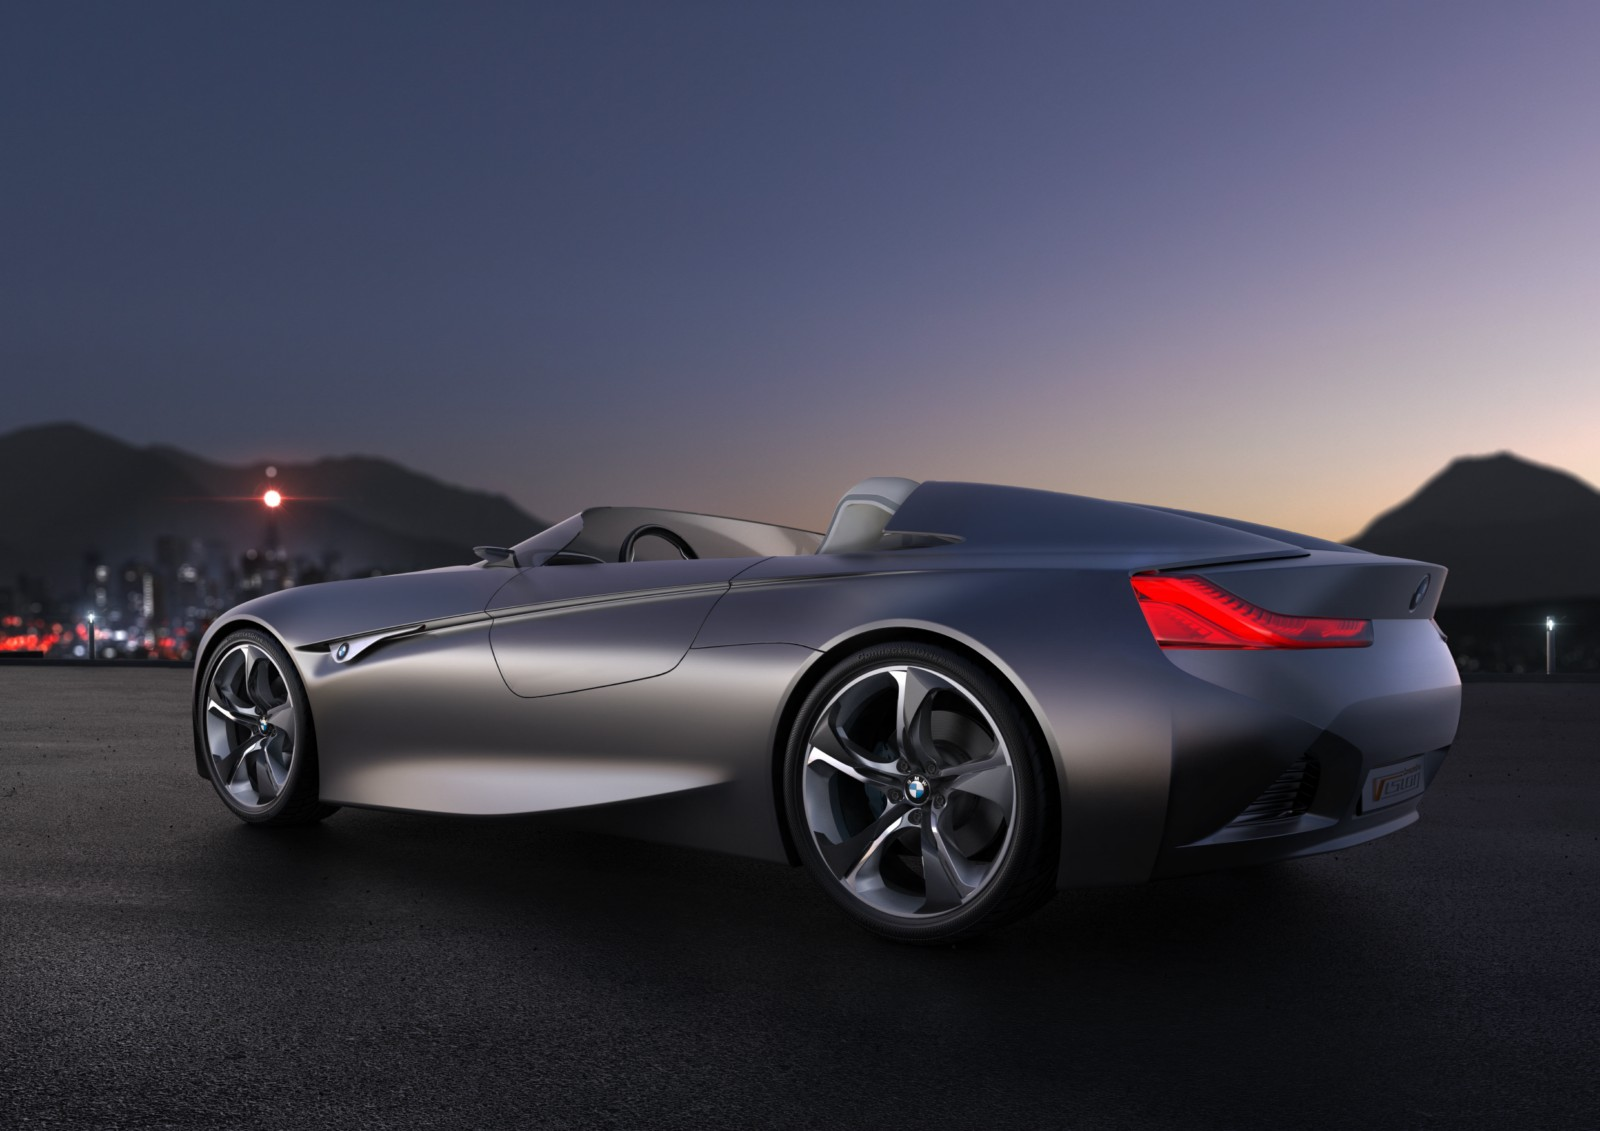 Car Tracking Devices >> BMW Vision ConnectedDrive Concept - Europe Car News - latest cars, hybrid, electric, mpv, concept